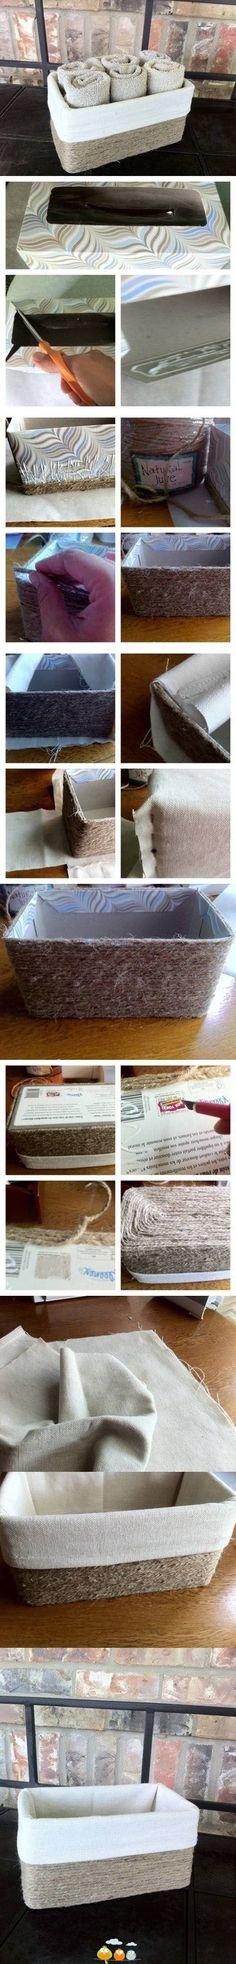 tissue box to decorative storage box